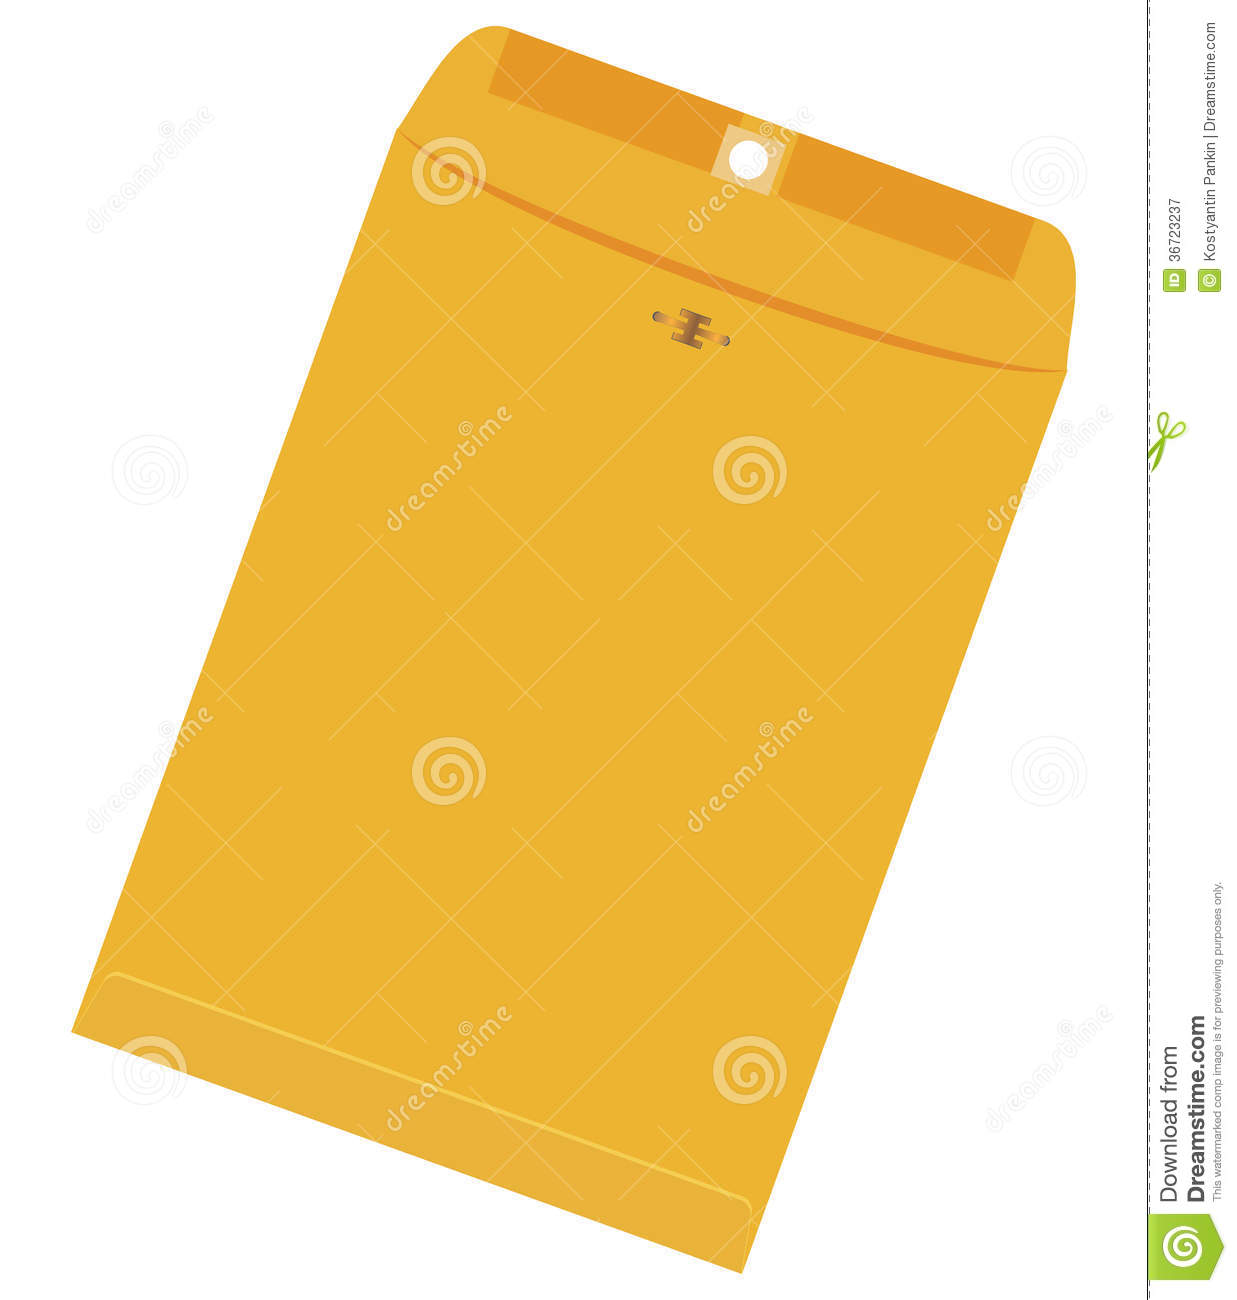 large yellow envelope stock vector image of side